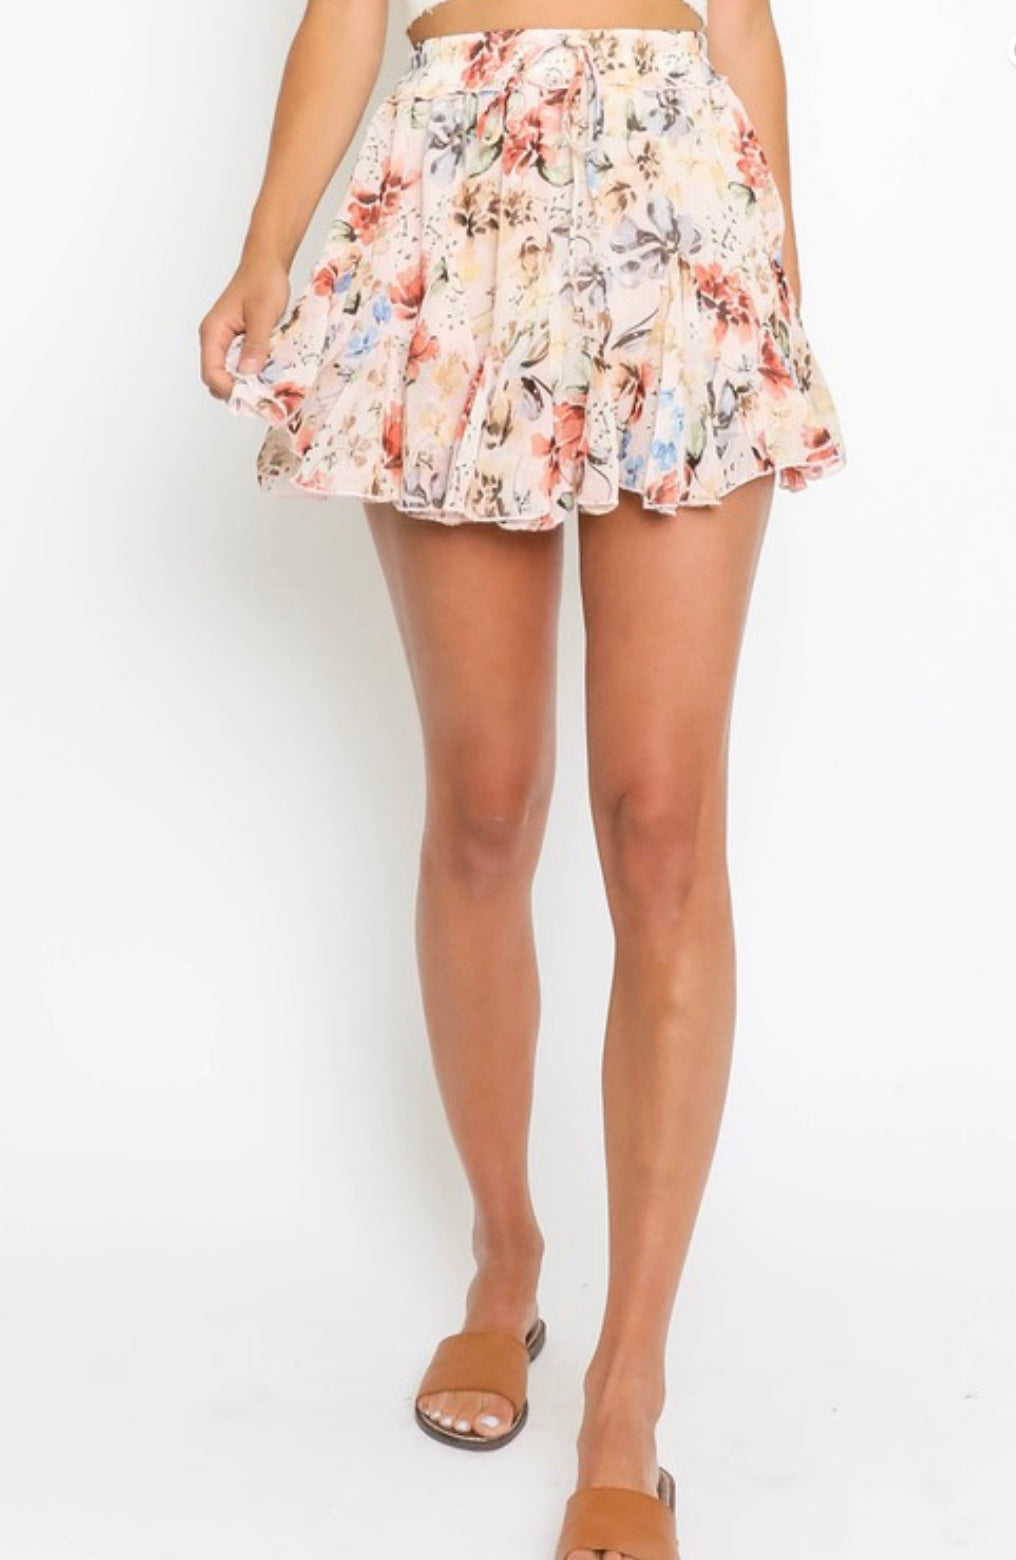 Pink floral ruffled Skirt